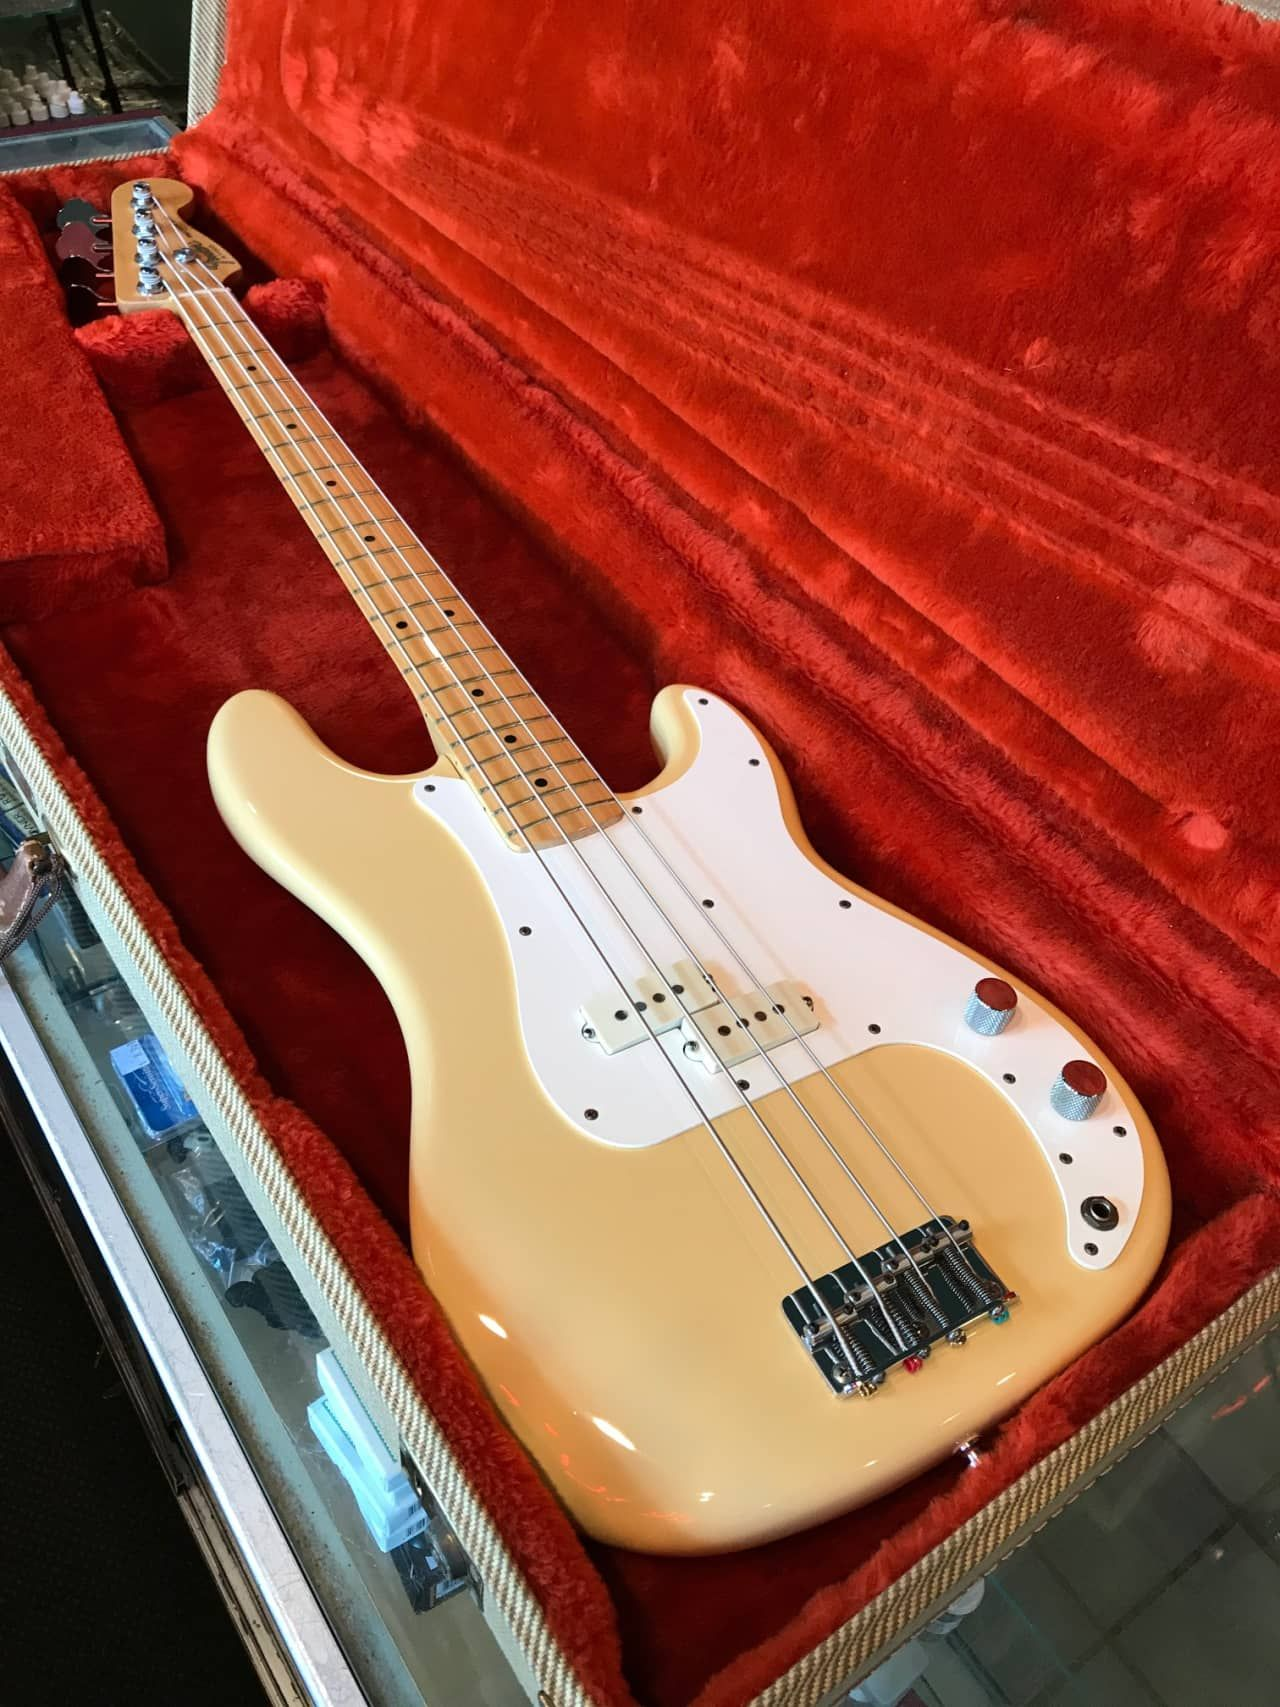 hight resolution of vintage 1983 usa fender p bass cream precision bass in excellent condition this cool instrument is american made alder body maple neck cream finish